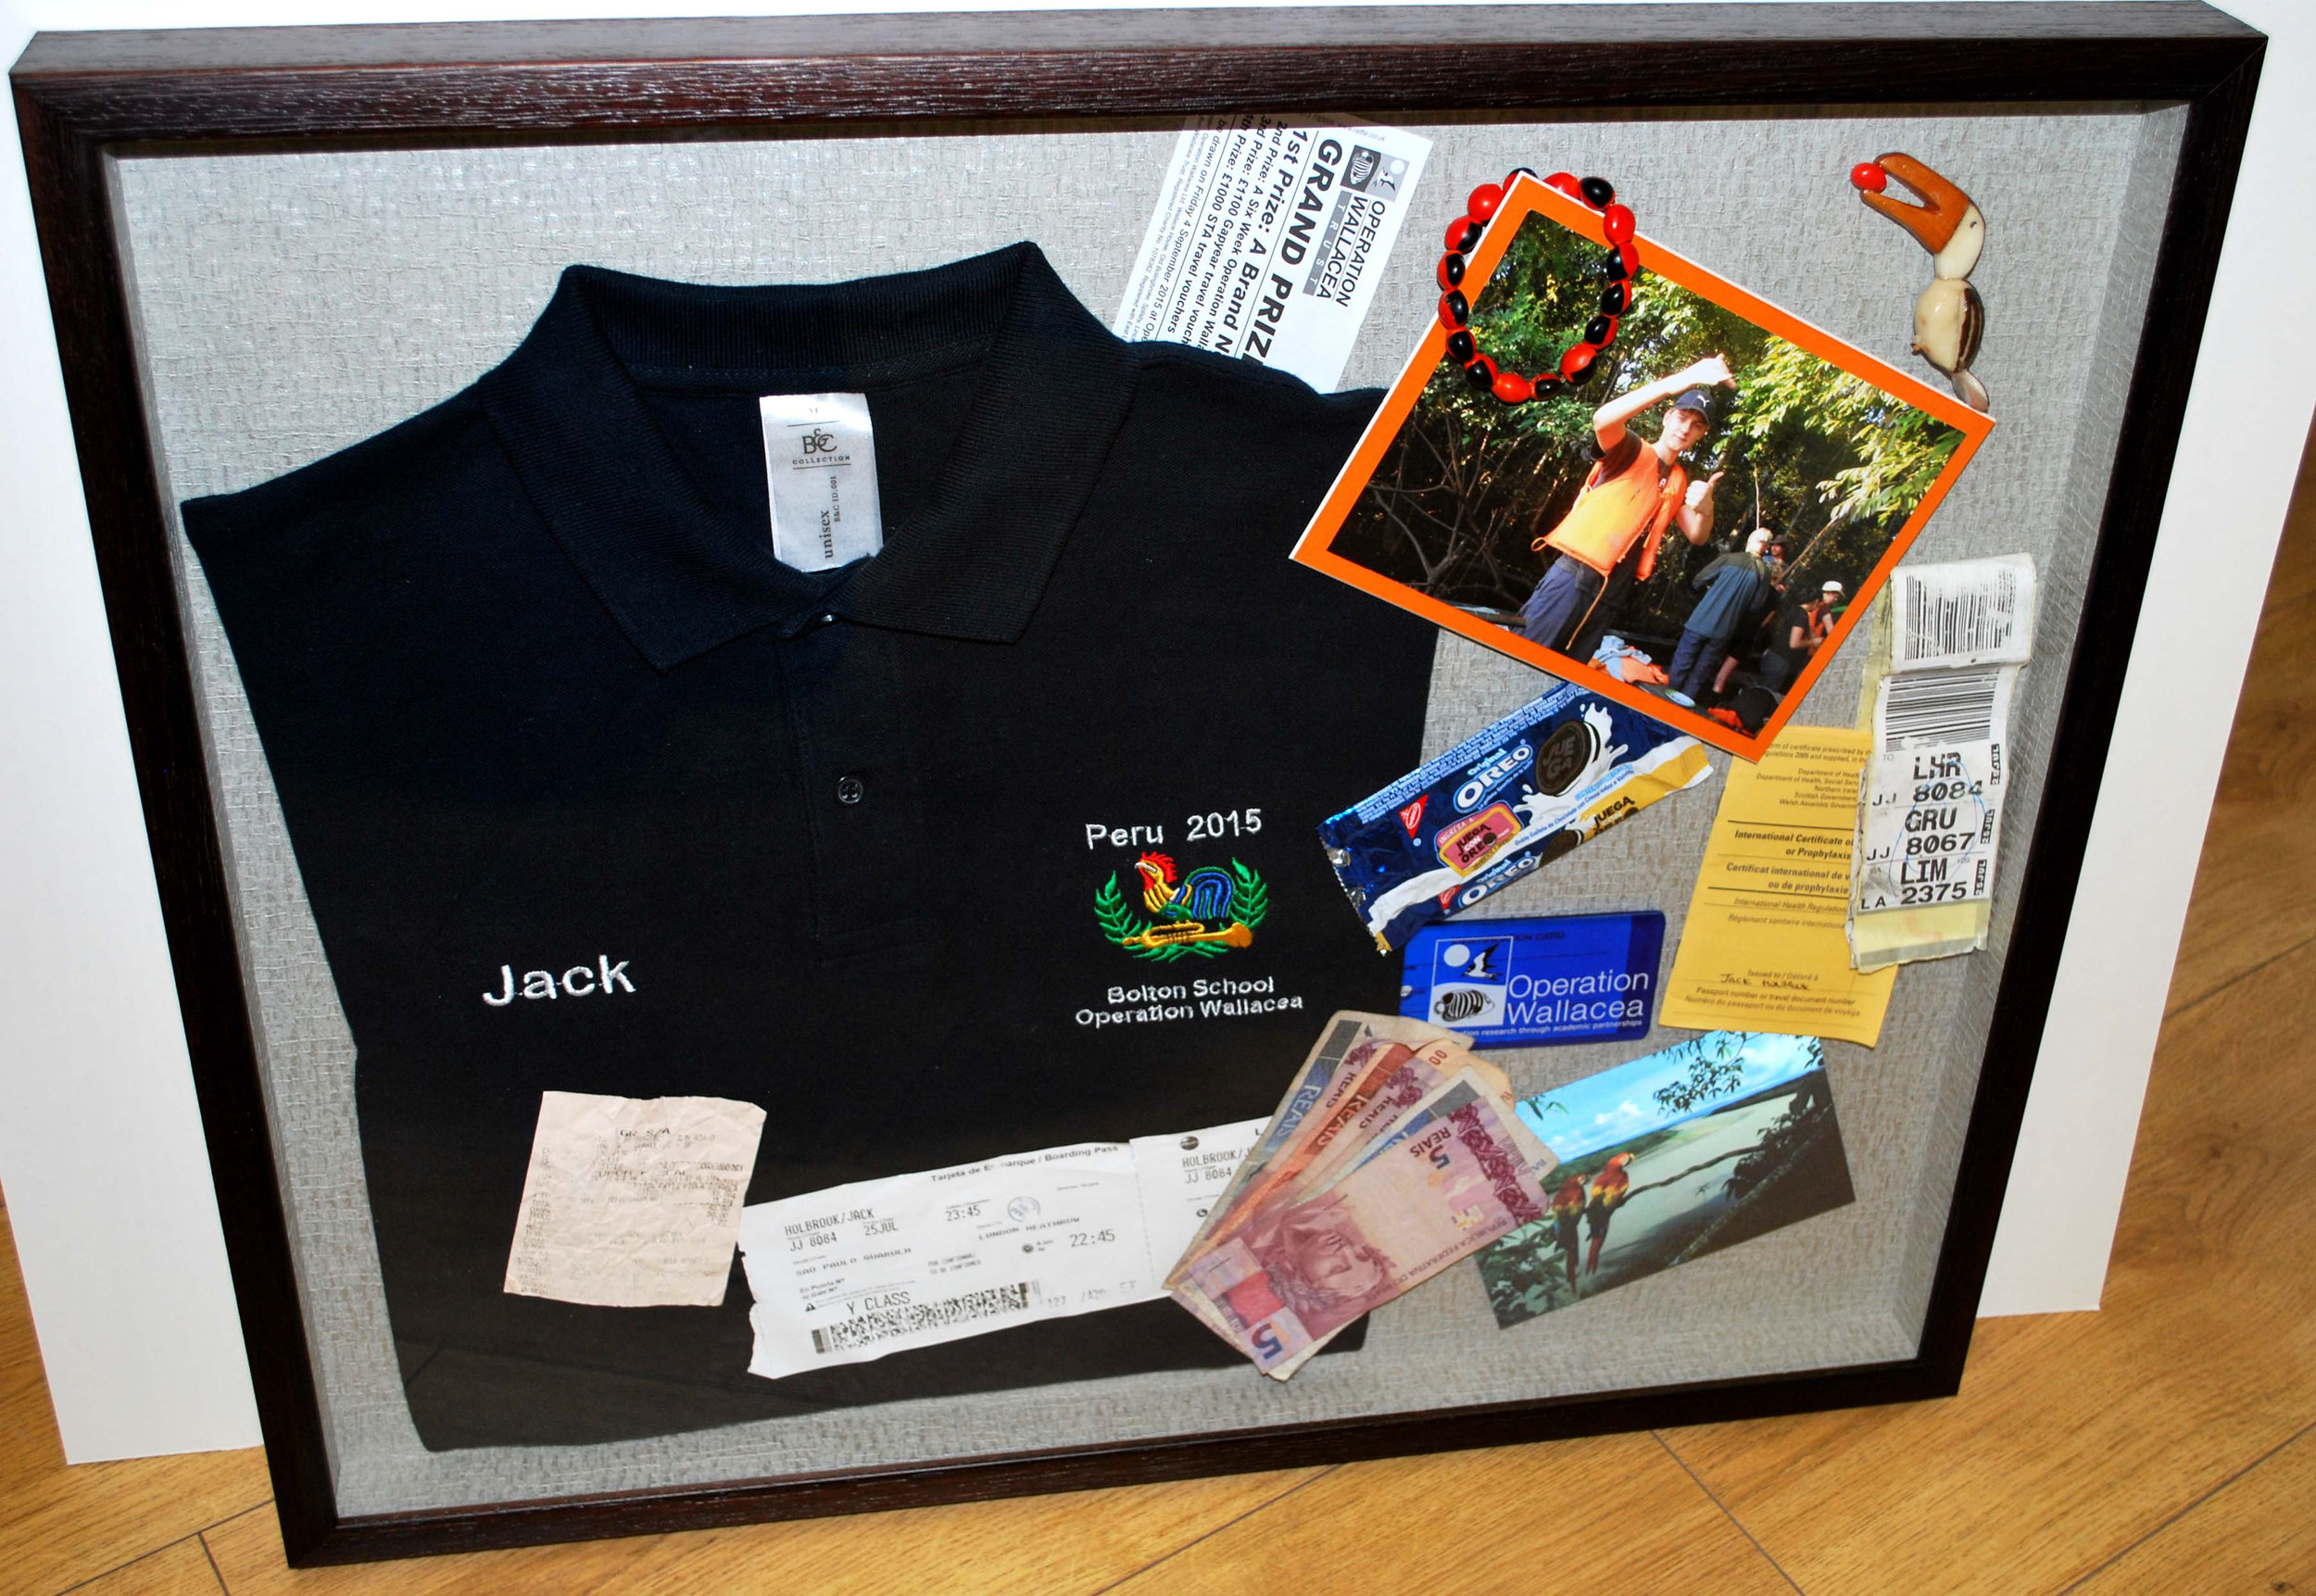 Rather than lay out these items out formally we suggested framing them with an 'open suitcase' feel as this was to be a surprise presentation for the client's son having returned from his student travels overseas. Random!